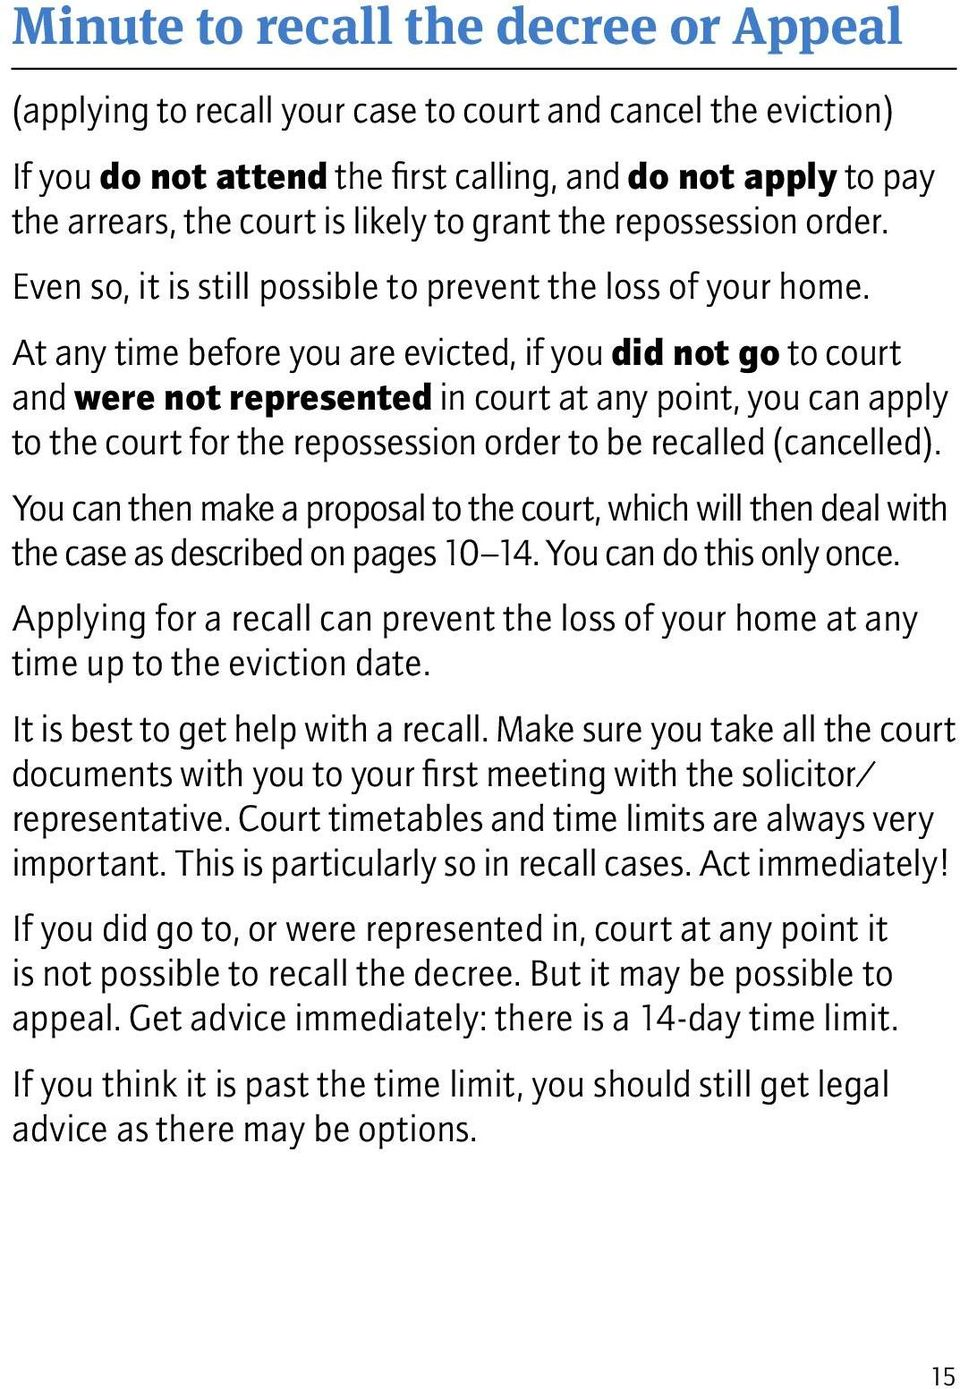 At any time before you are evicted, if you did not go to court and were not represented in court at any point, you can apply to the court for the repossession order to be recalled (cancelled).